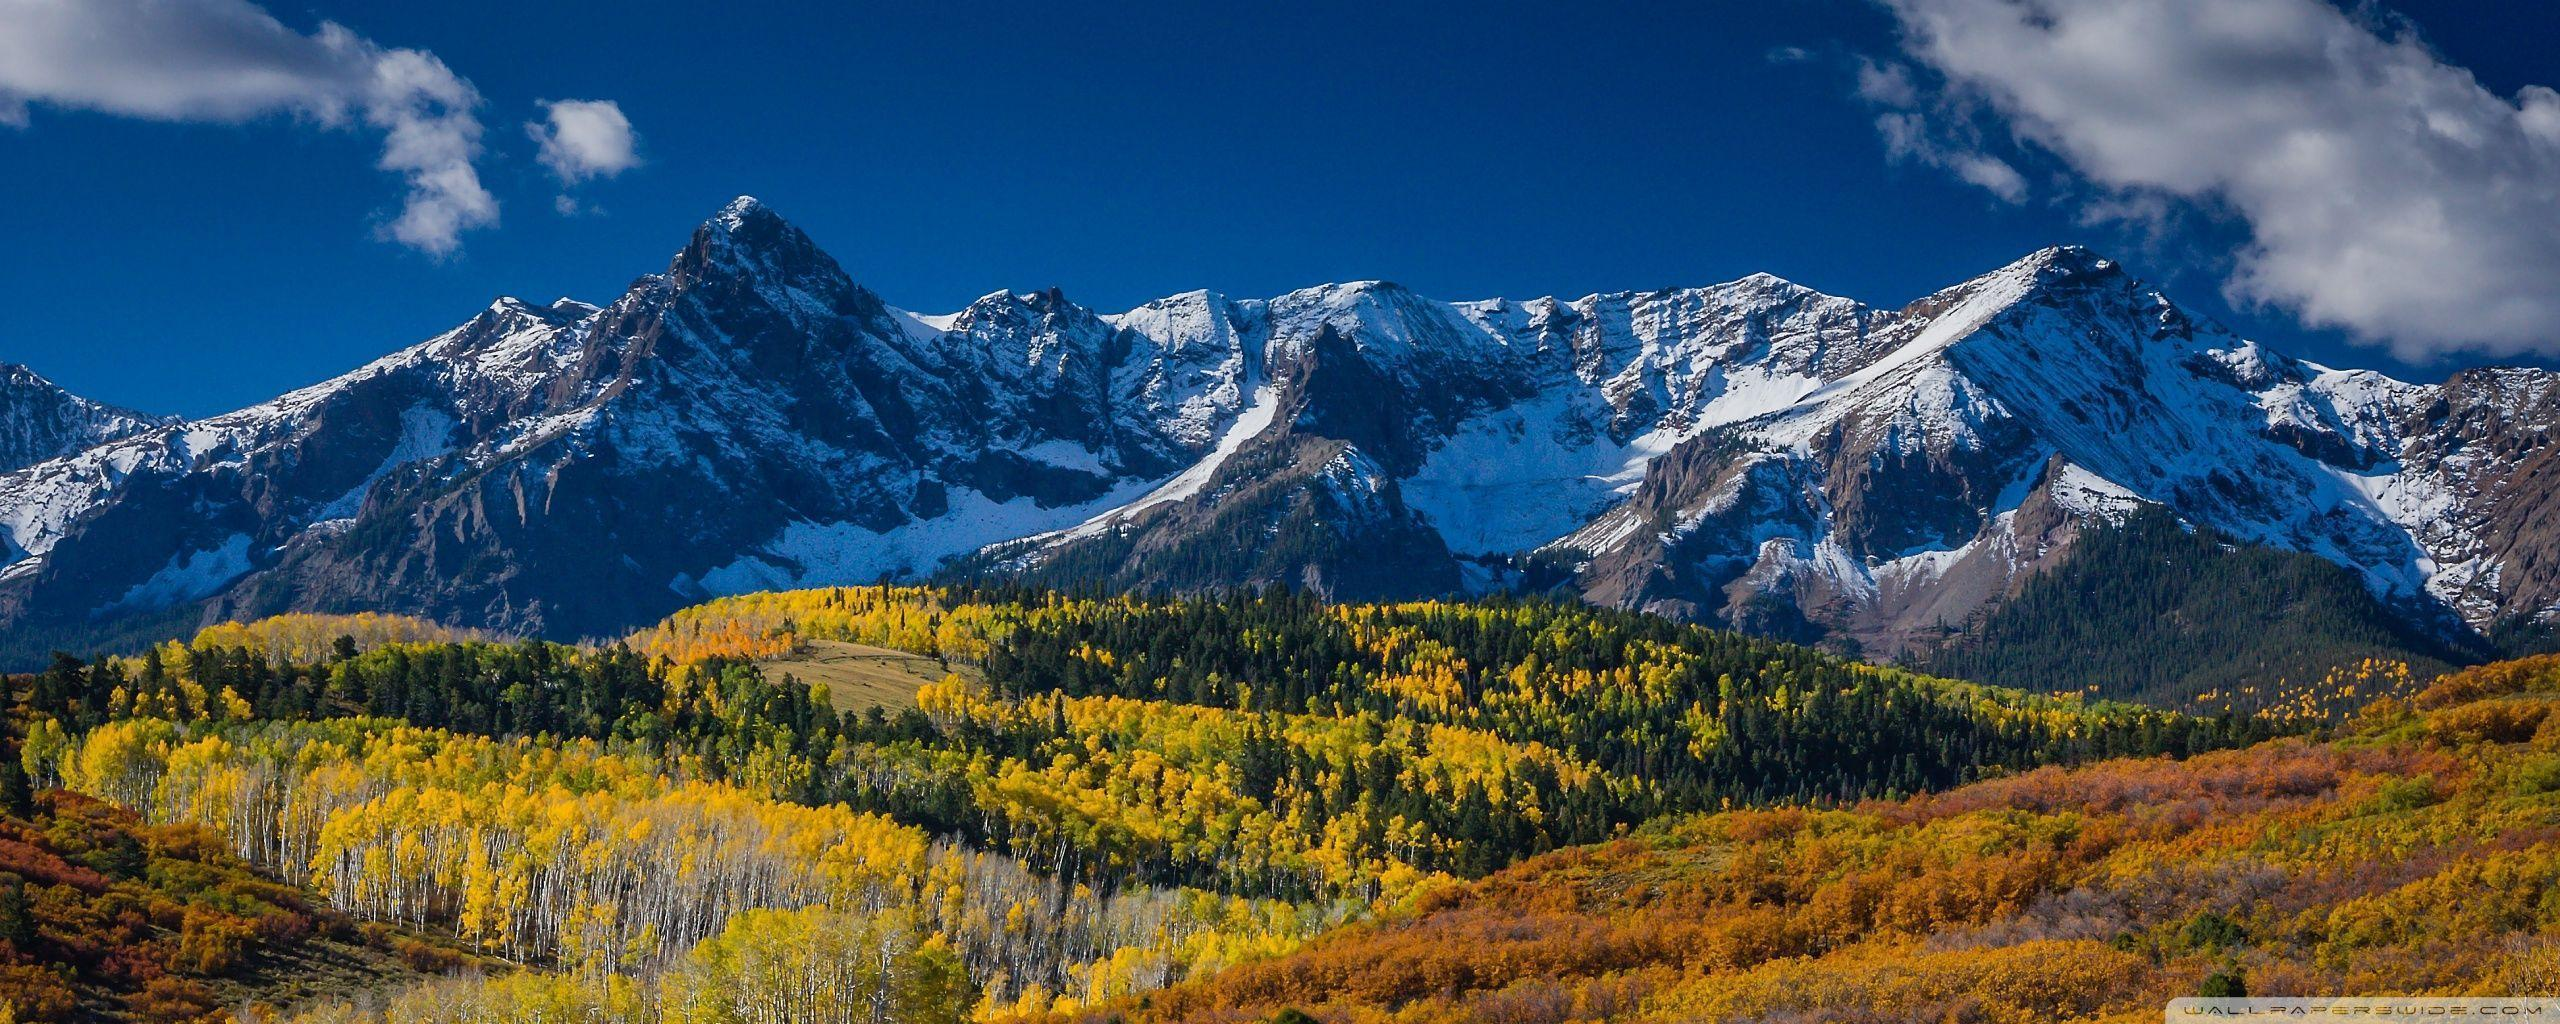 Mountain Landscape In Aspen Colorado Wallpapers